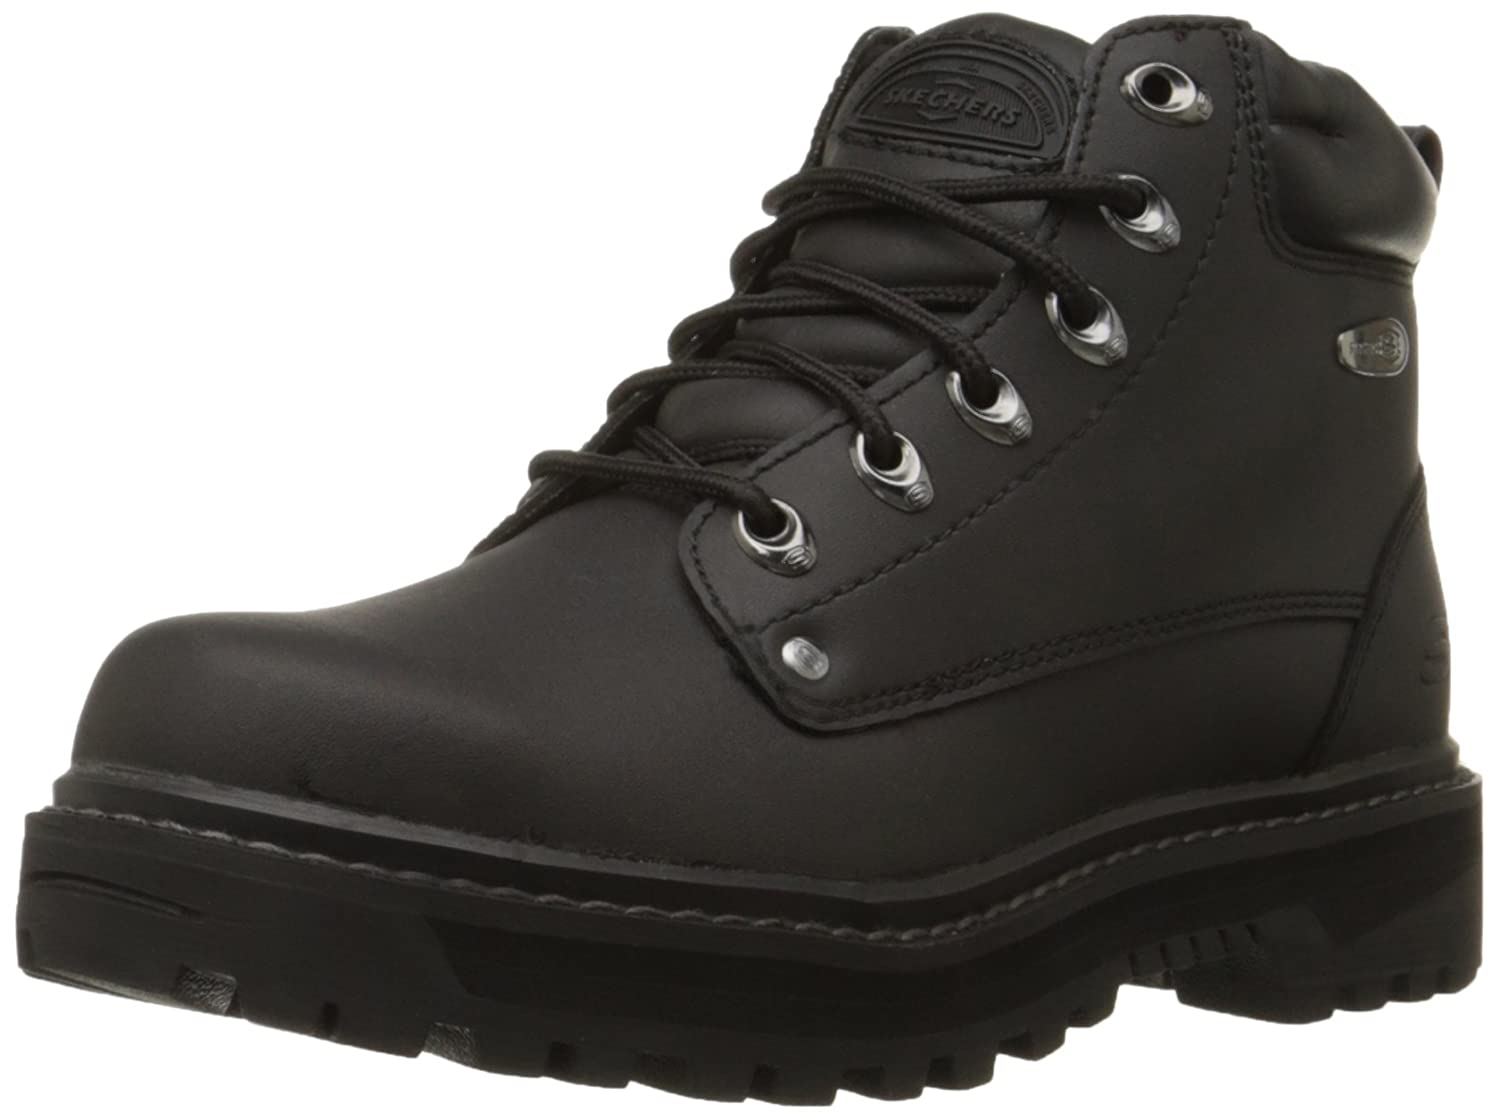 Skechers Boots Menns Amazon vqif6